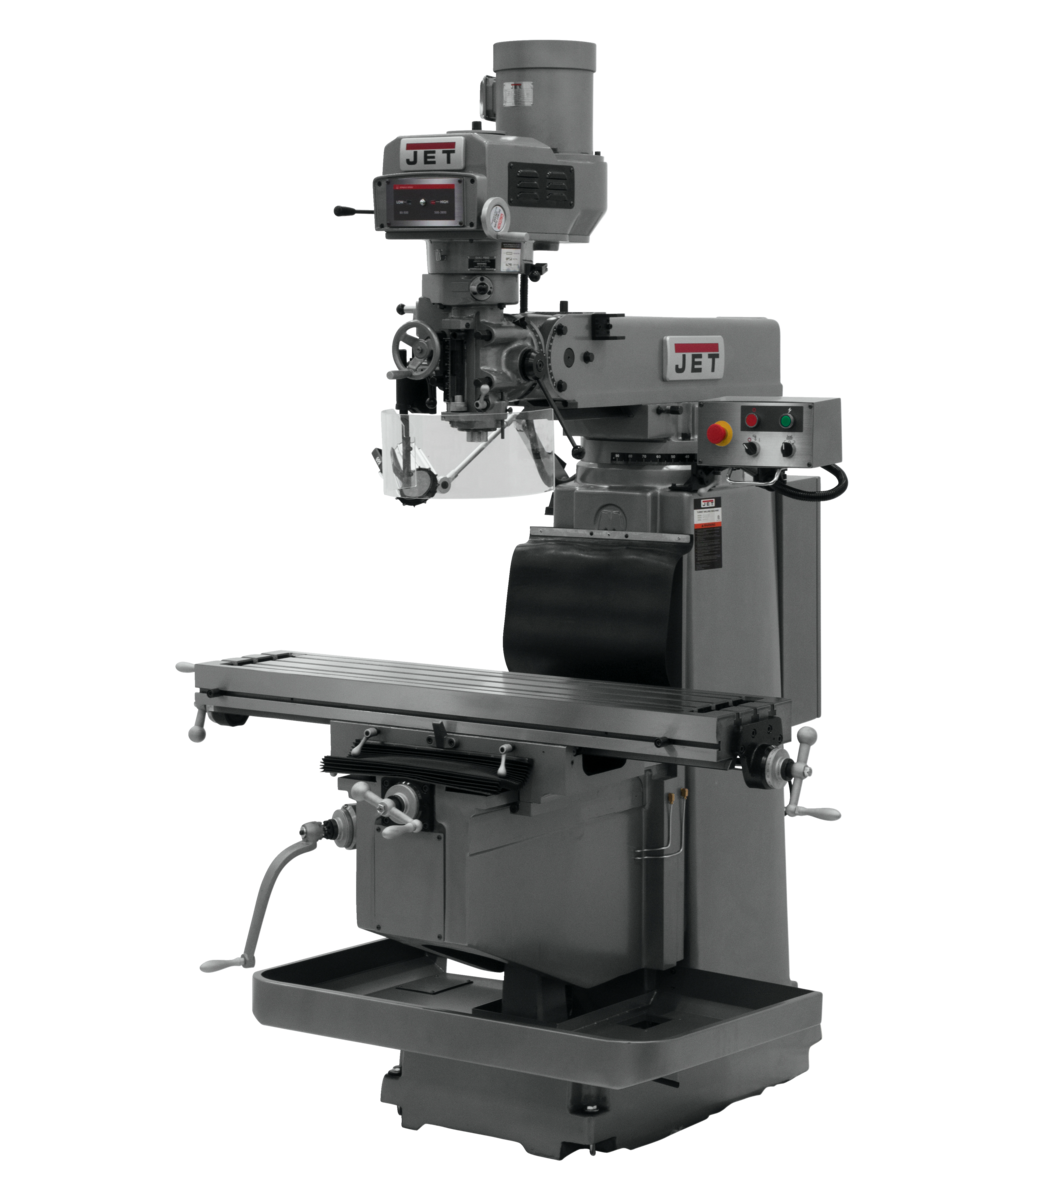 JTM-1254RVS with 3-Axis ACU-RITE G-2 MILLPOWER CNC